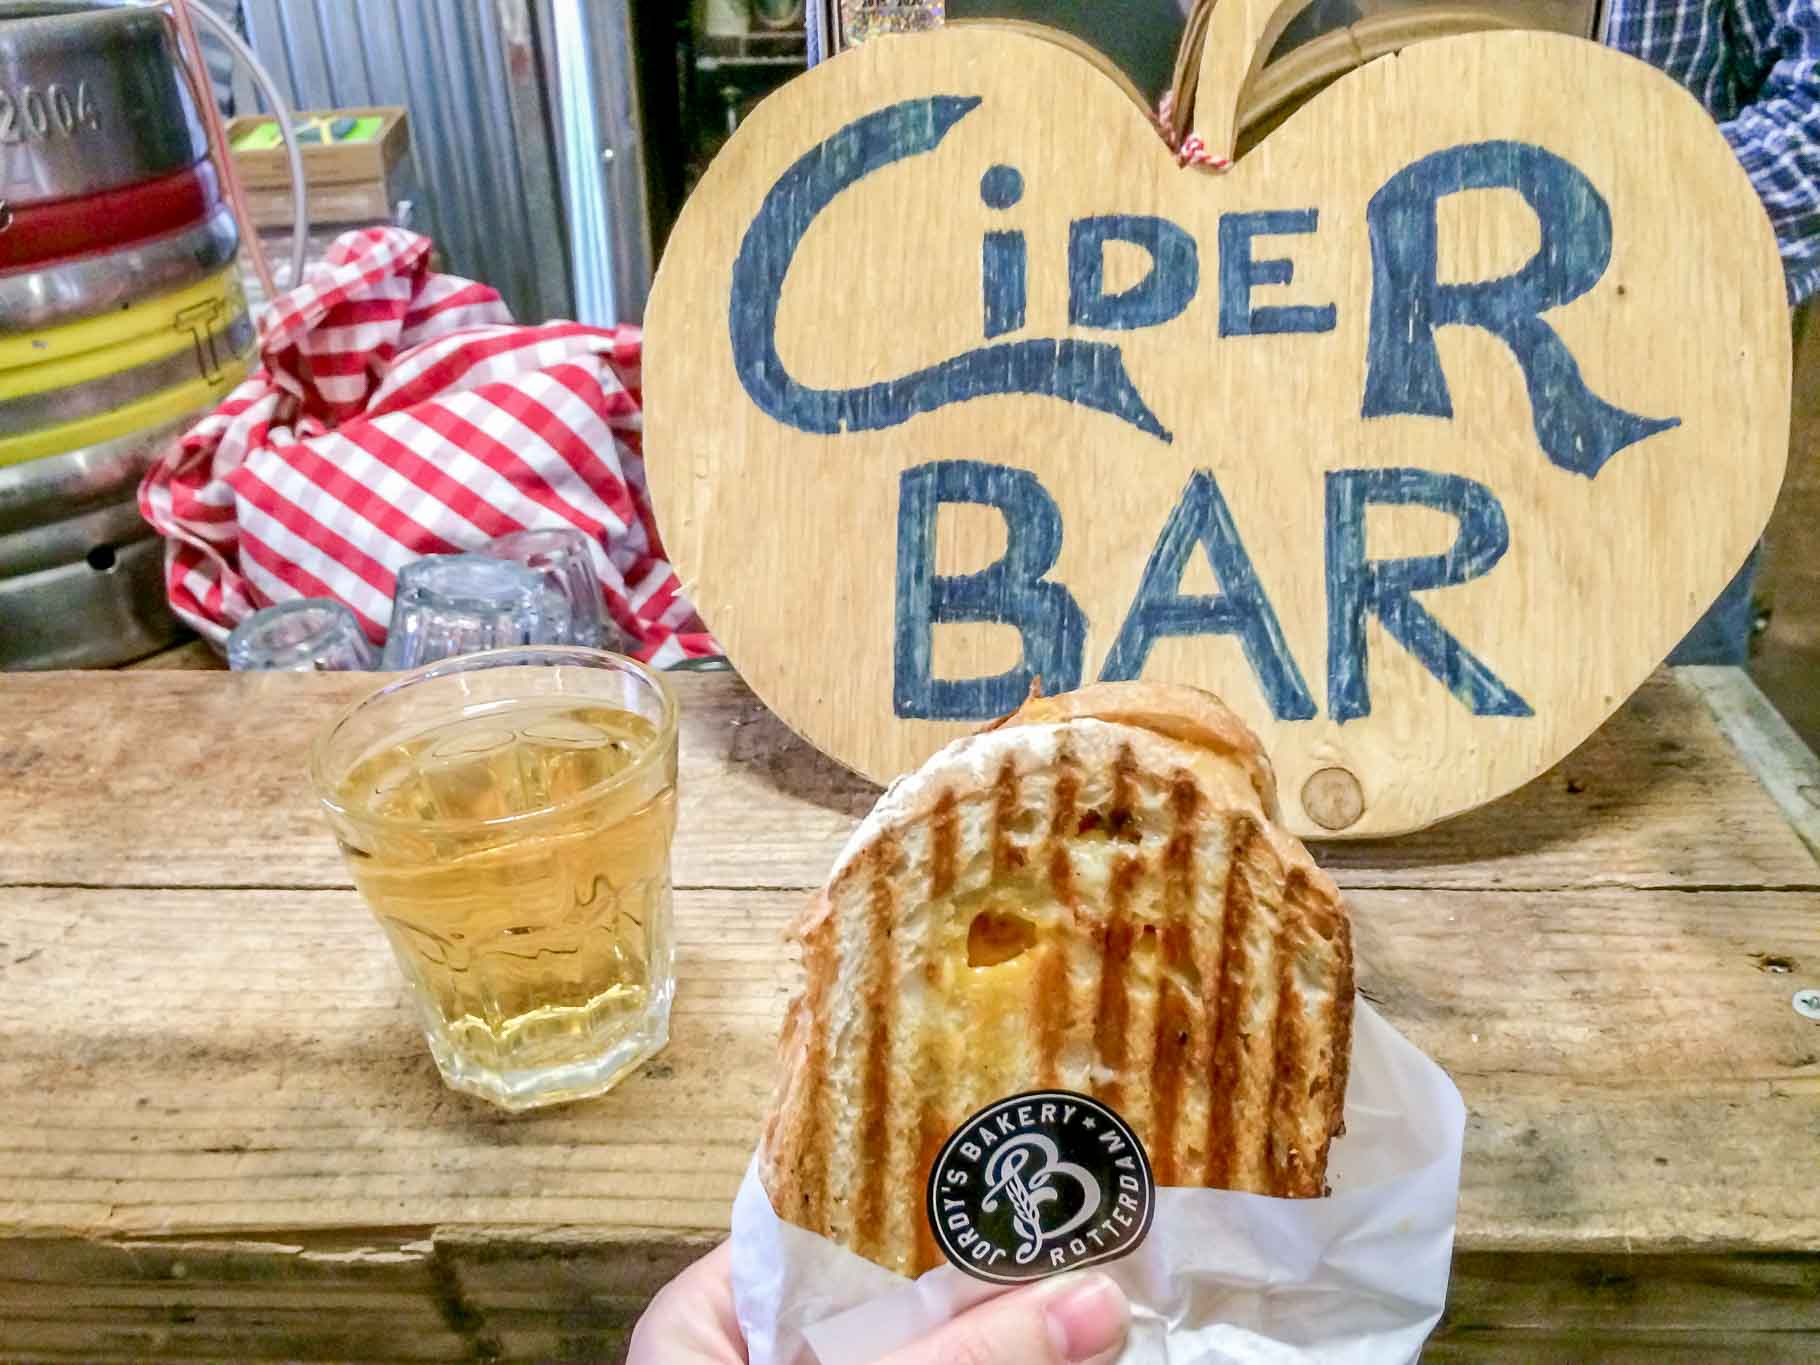 """""""Cider Bar"""" sign, sandwich, and drink on a table"""